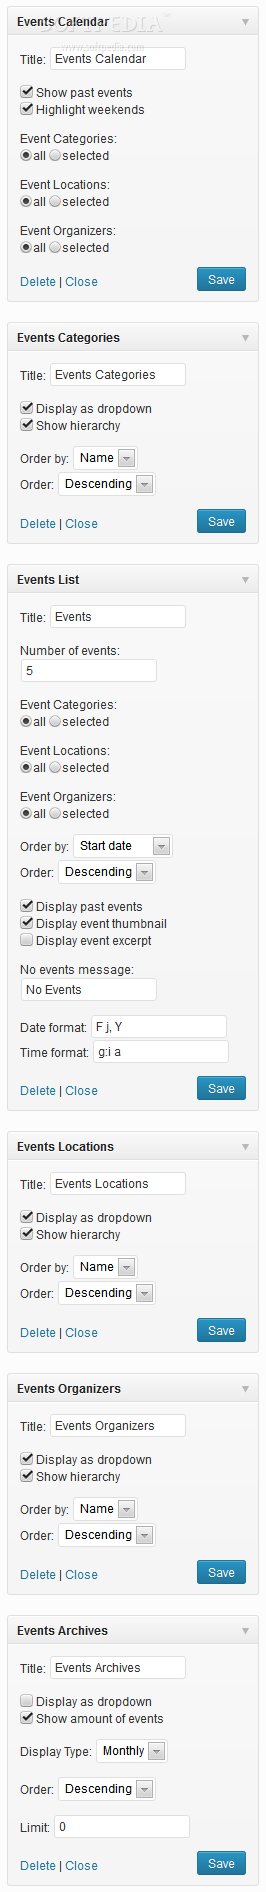 Events Maker - A plethora of sidebar widgets are available